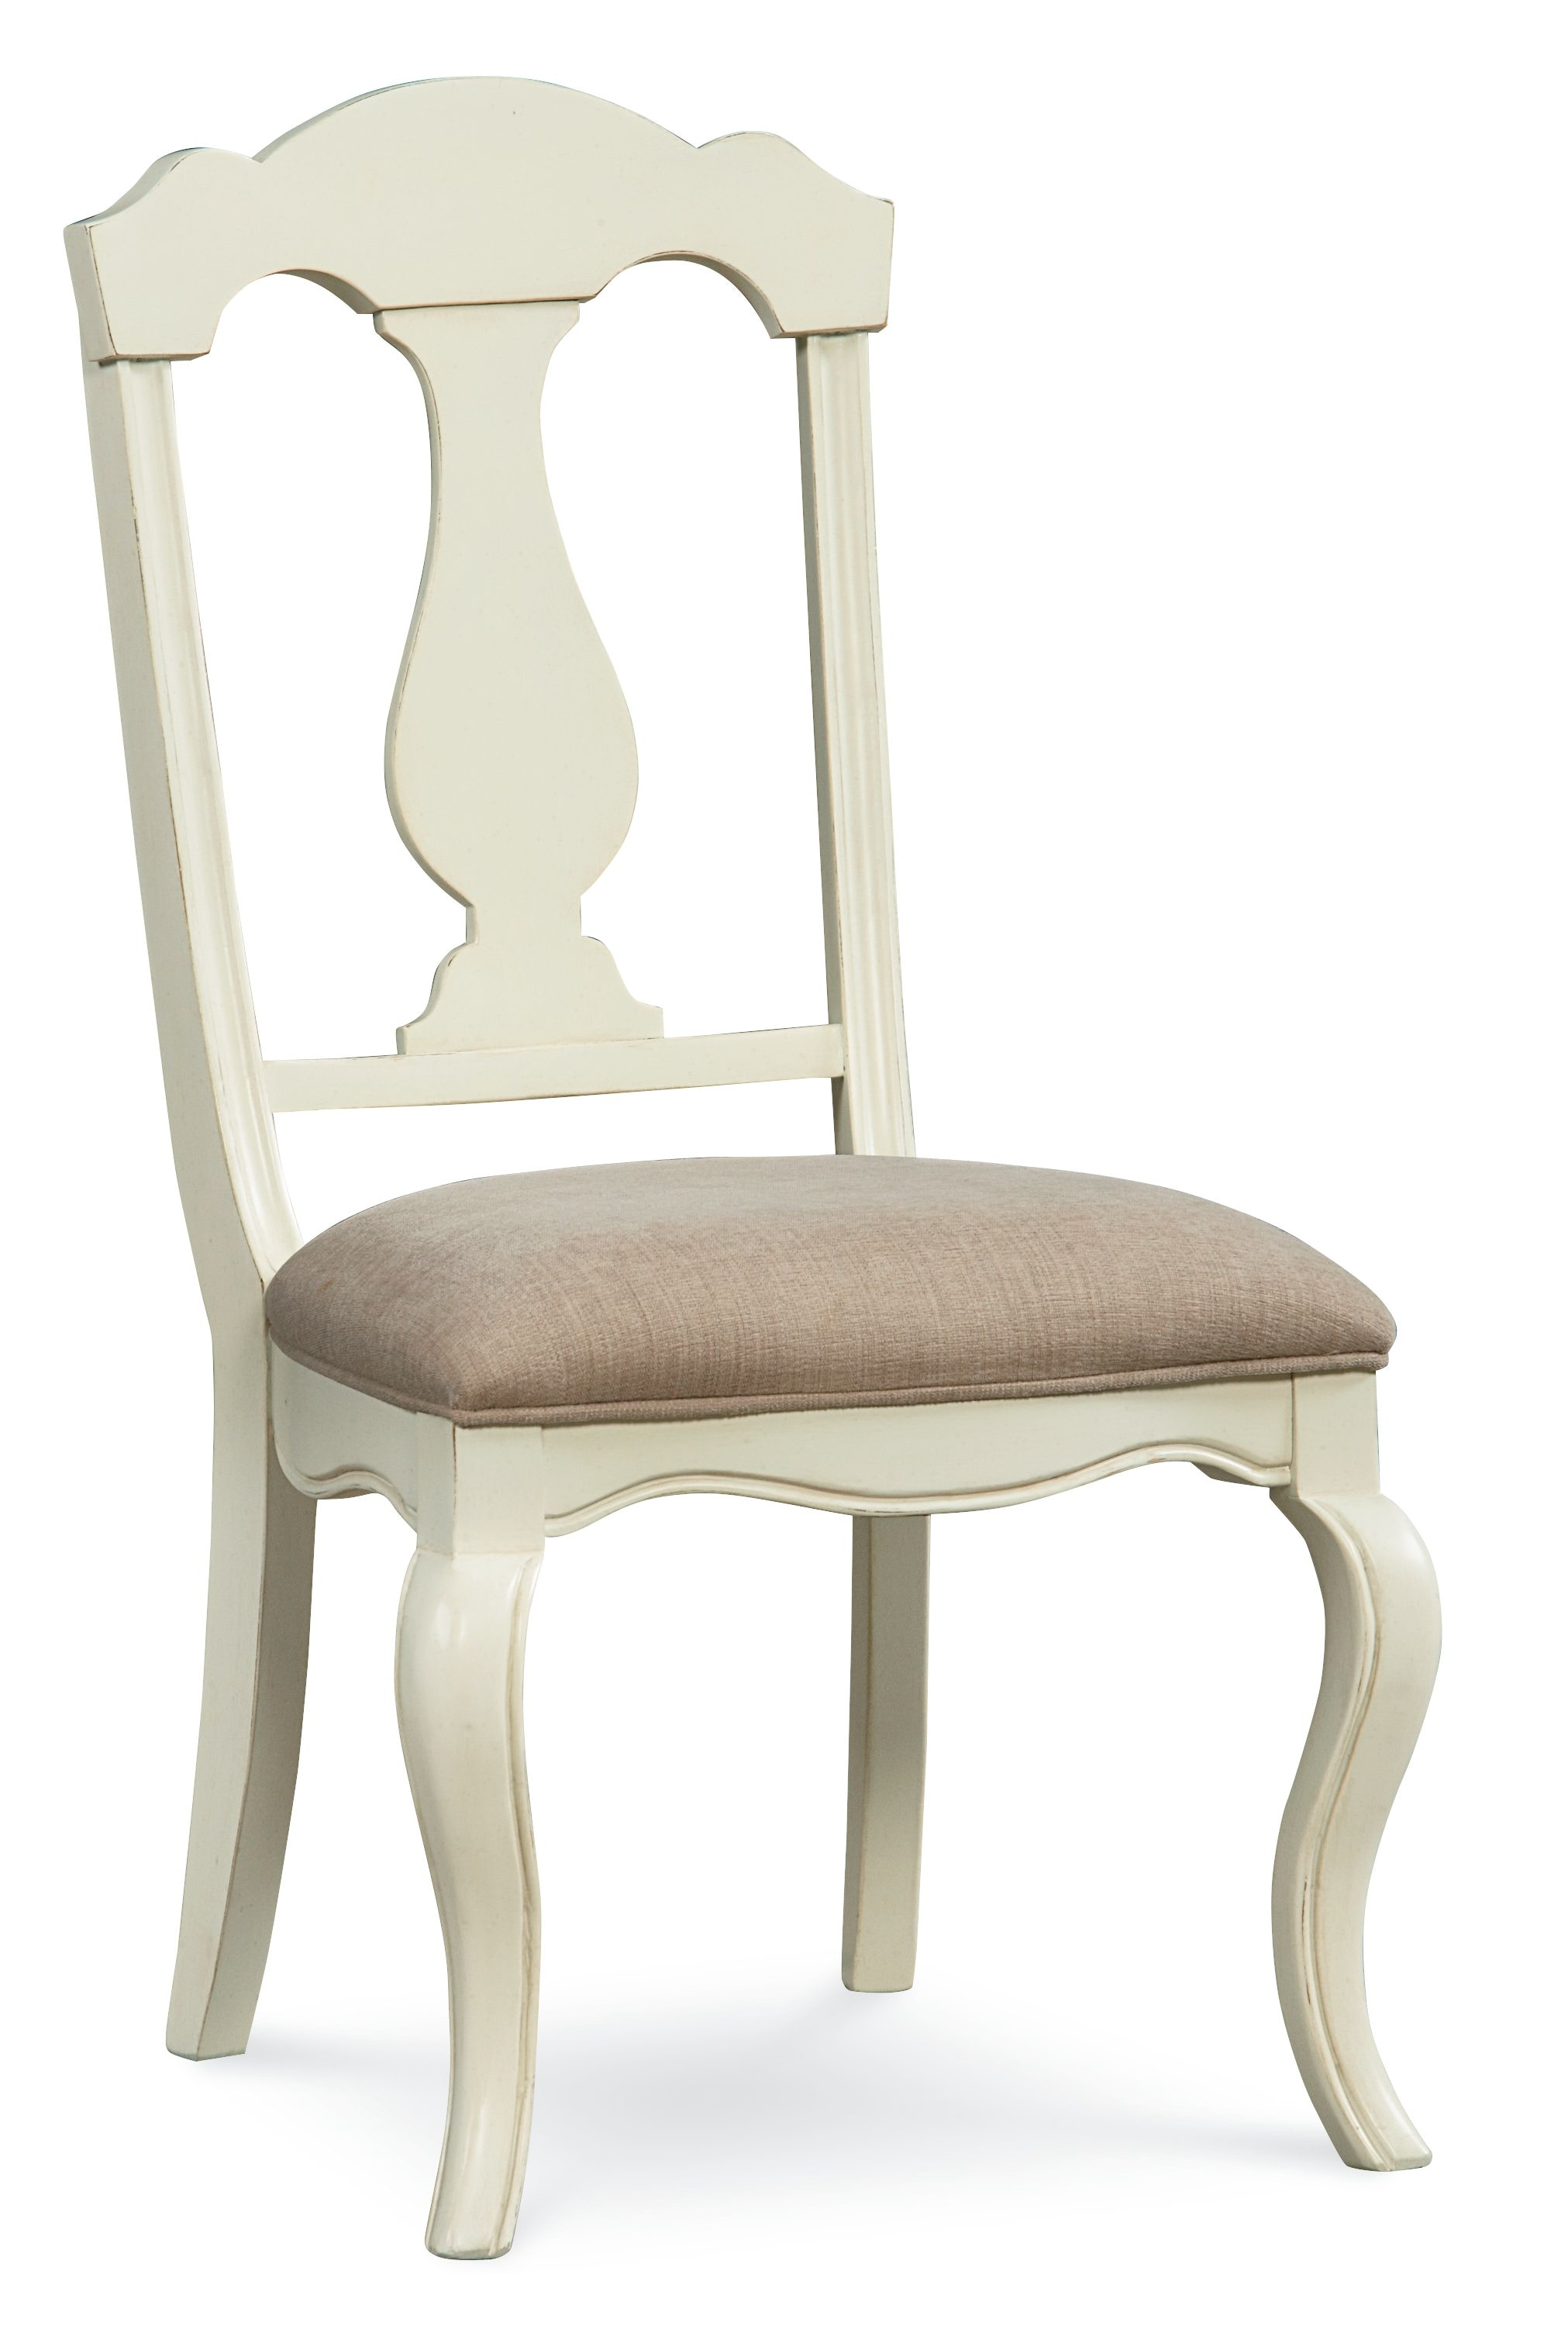 bedroom chair canvas directors chairs room to tupelo ms legacy classic kids desk 3850 640 kd